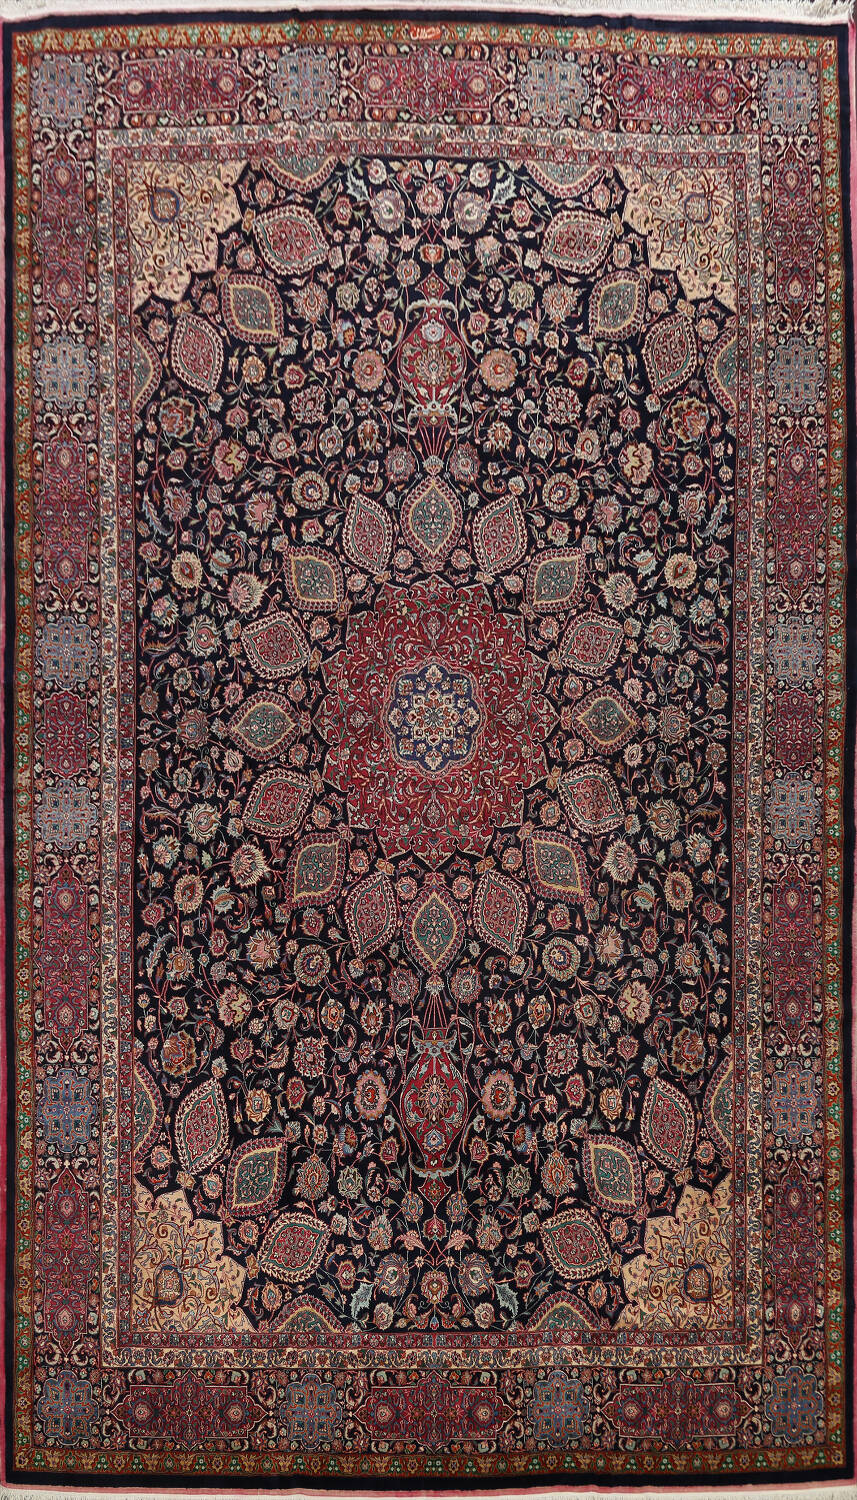 Large Floral Mashad Persian Area Rug 11x15 image 1